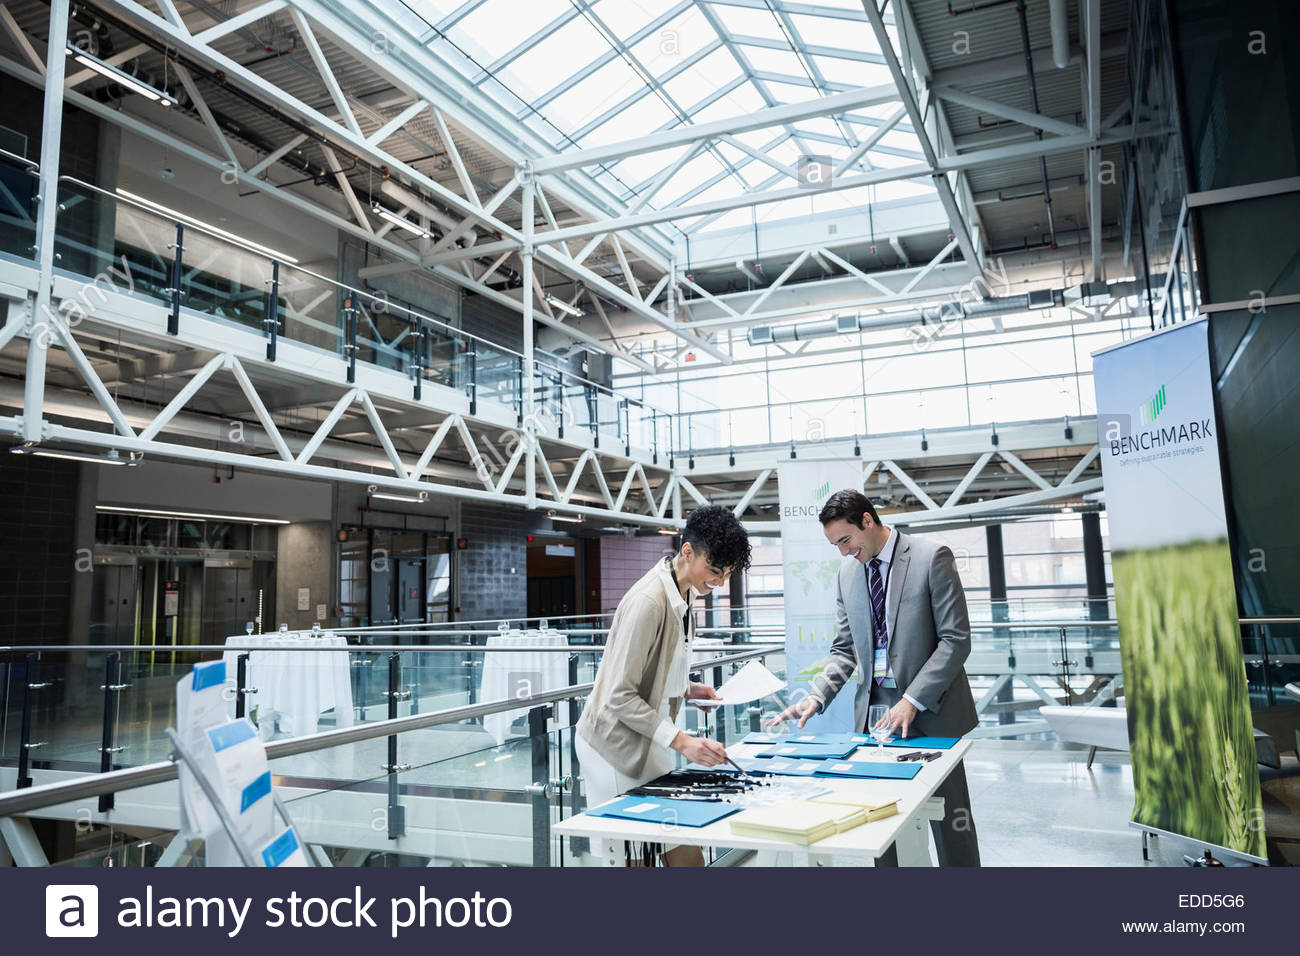 Businessman checking in at conference registration table - Stock Image